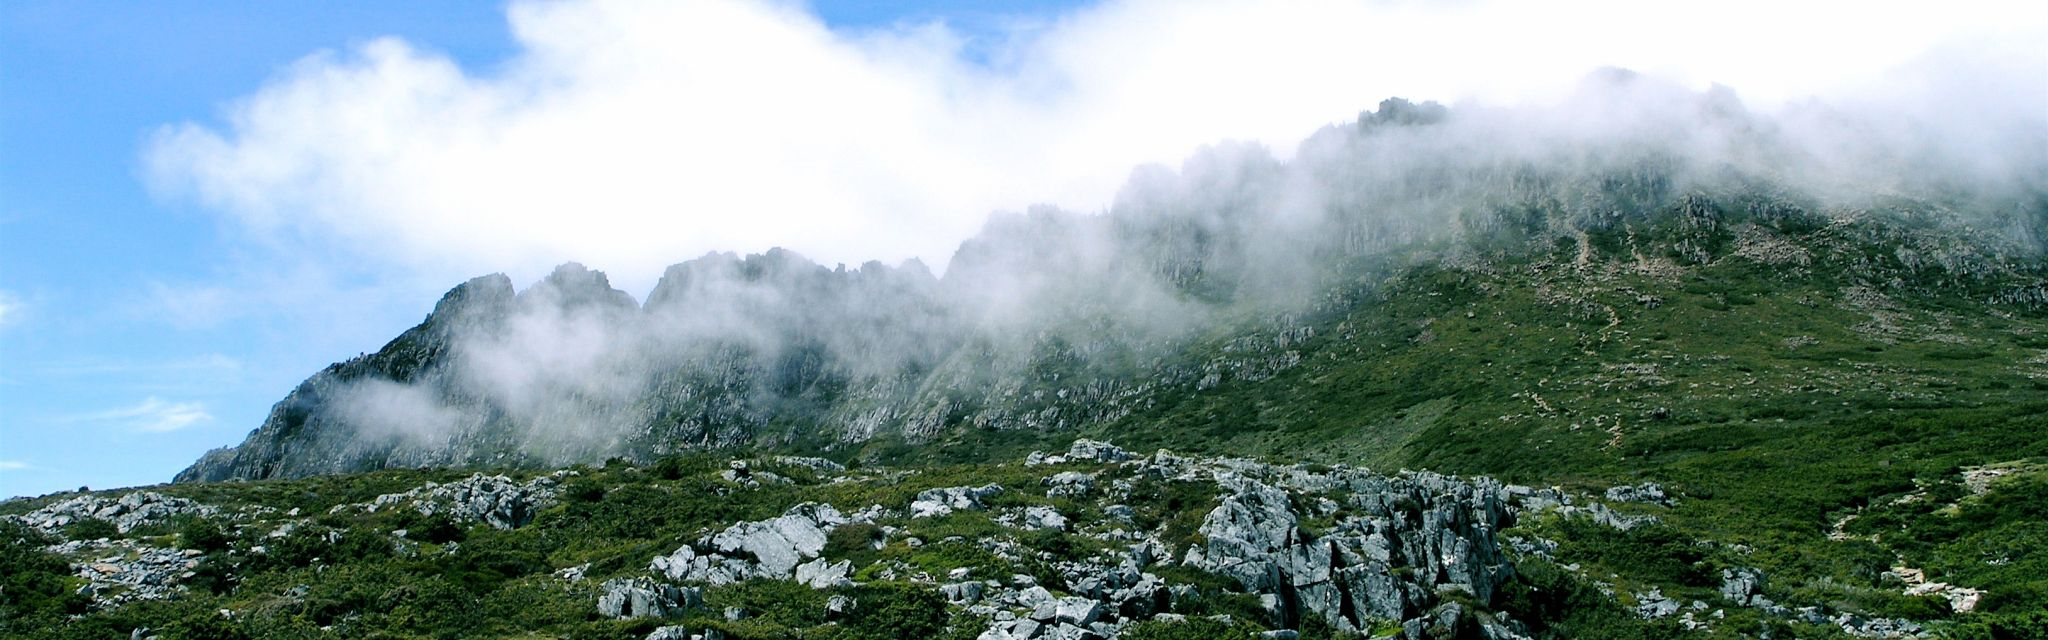 Clouds upon Cradle Mountain.jpg